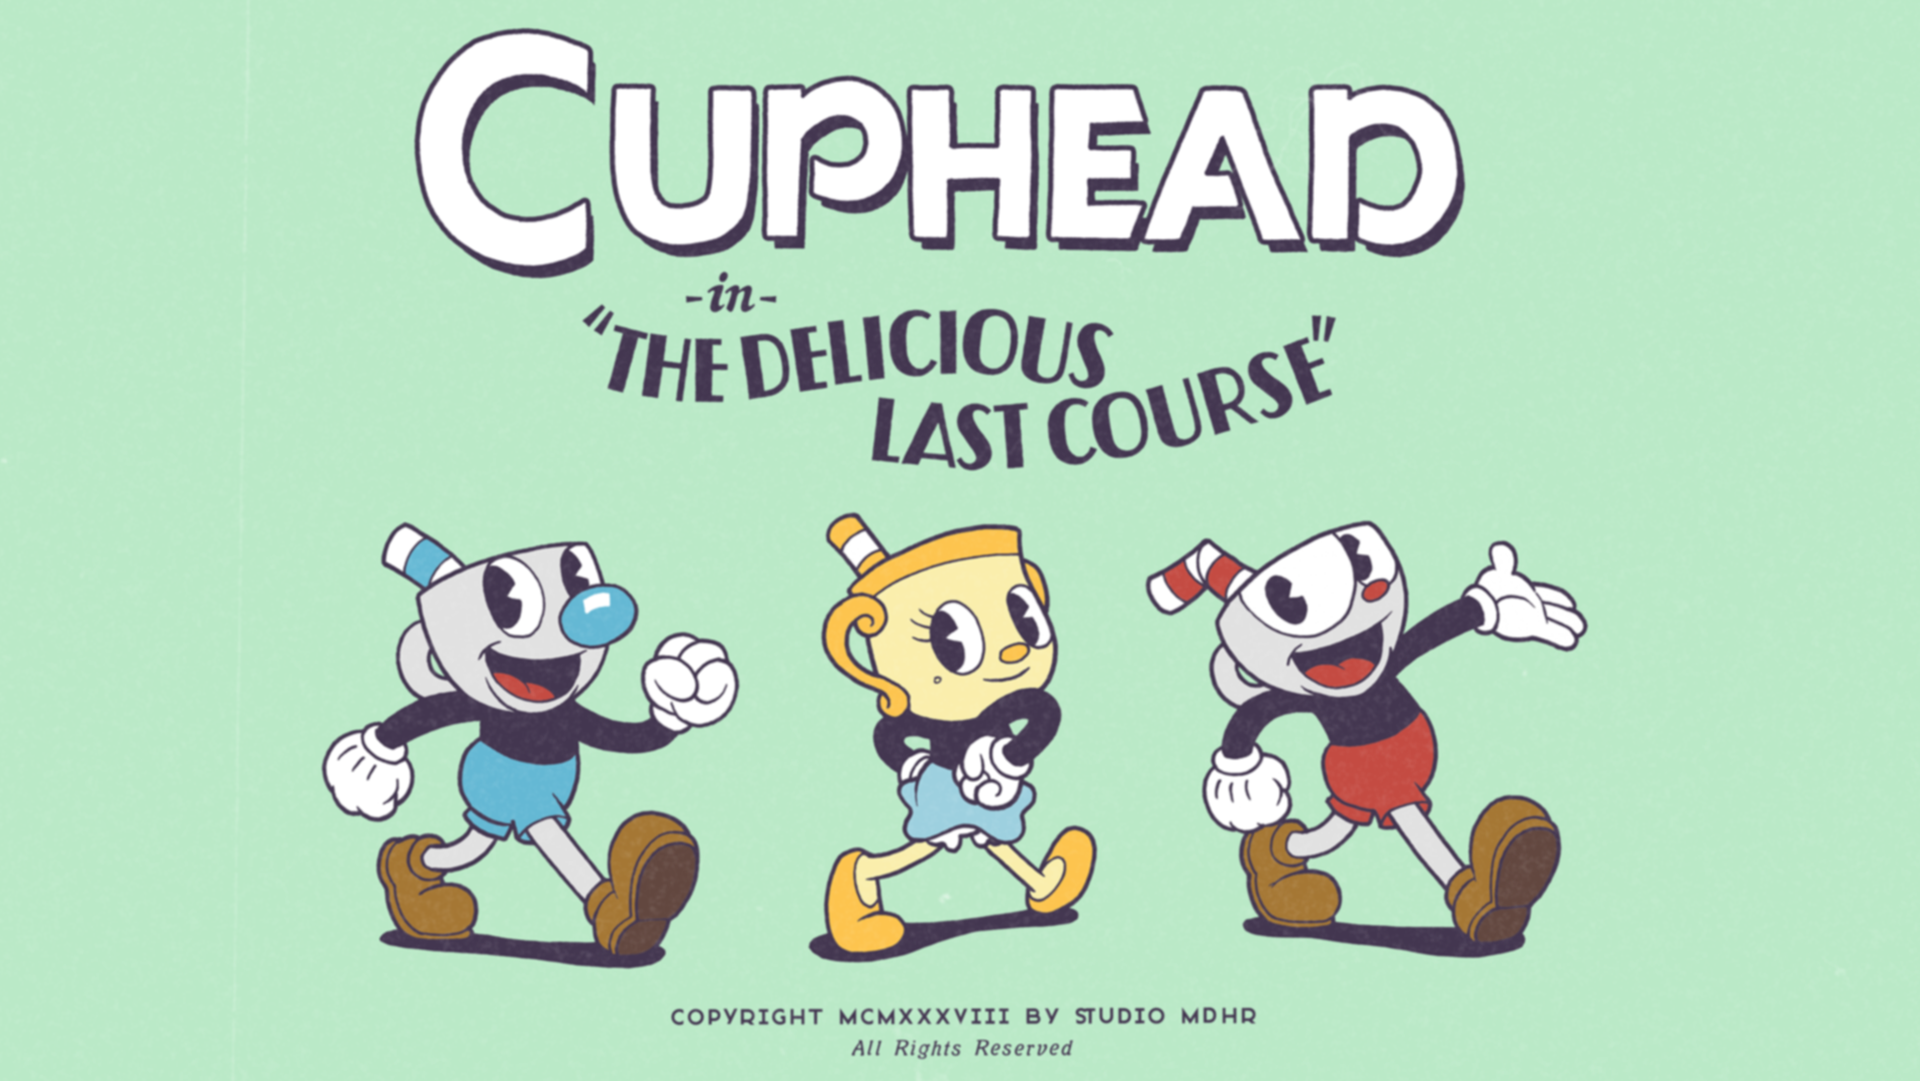 "xbox one exclusive games Cuphead ""The Delicious Last Course"""